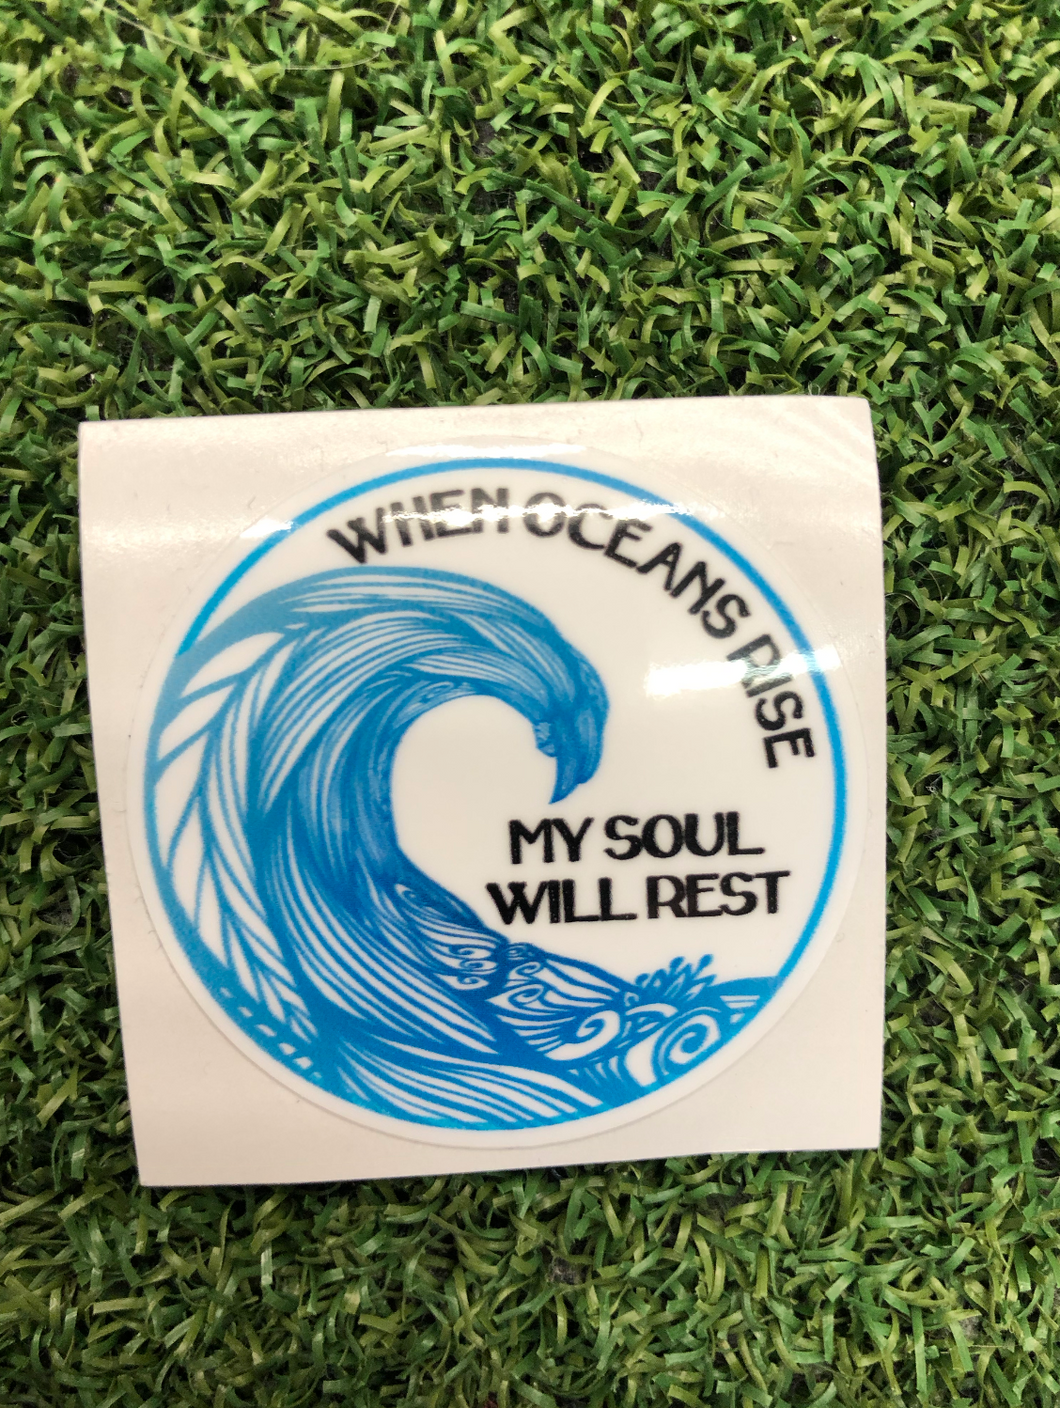 When ocean rise My soul will rest 2 inches - sunrise surf shop